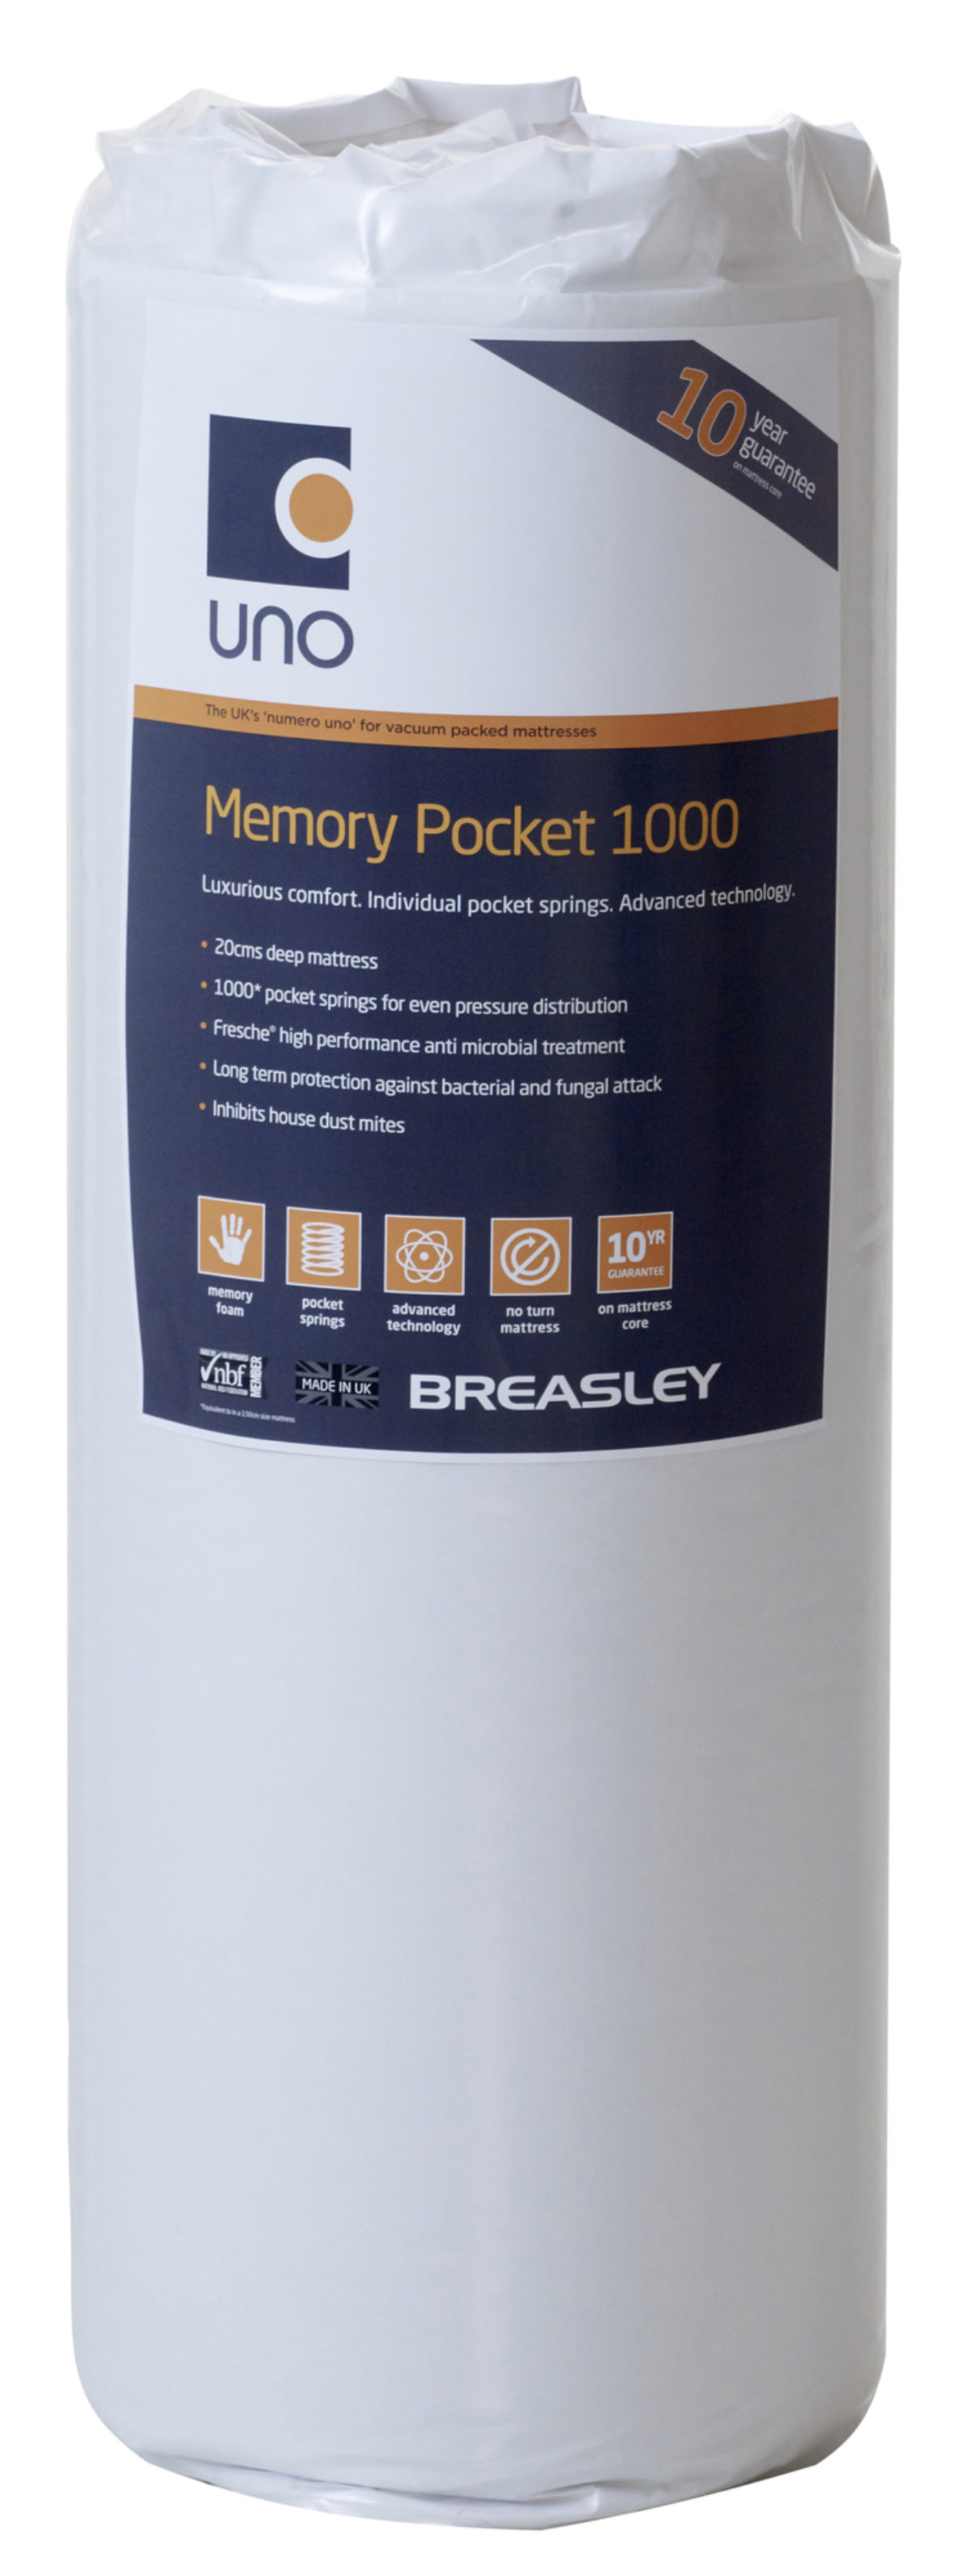 Uno Memory Pocket 1000 Rolled Matt Single Size  Standard Quilt  Without Adaptive Technology